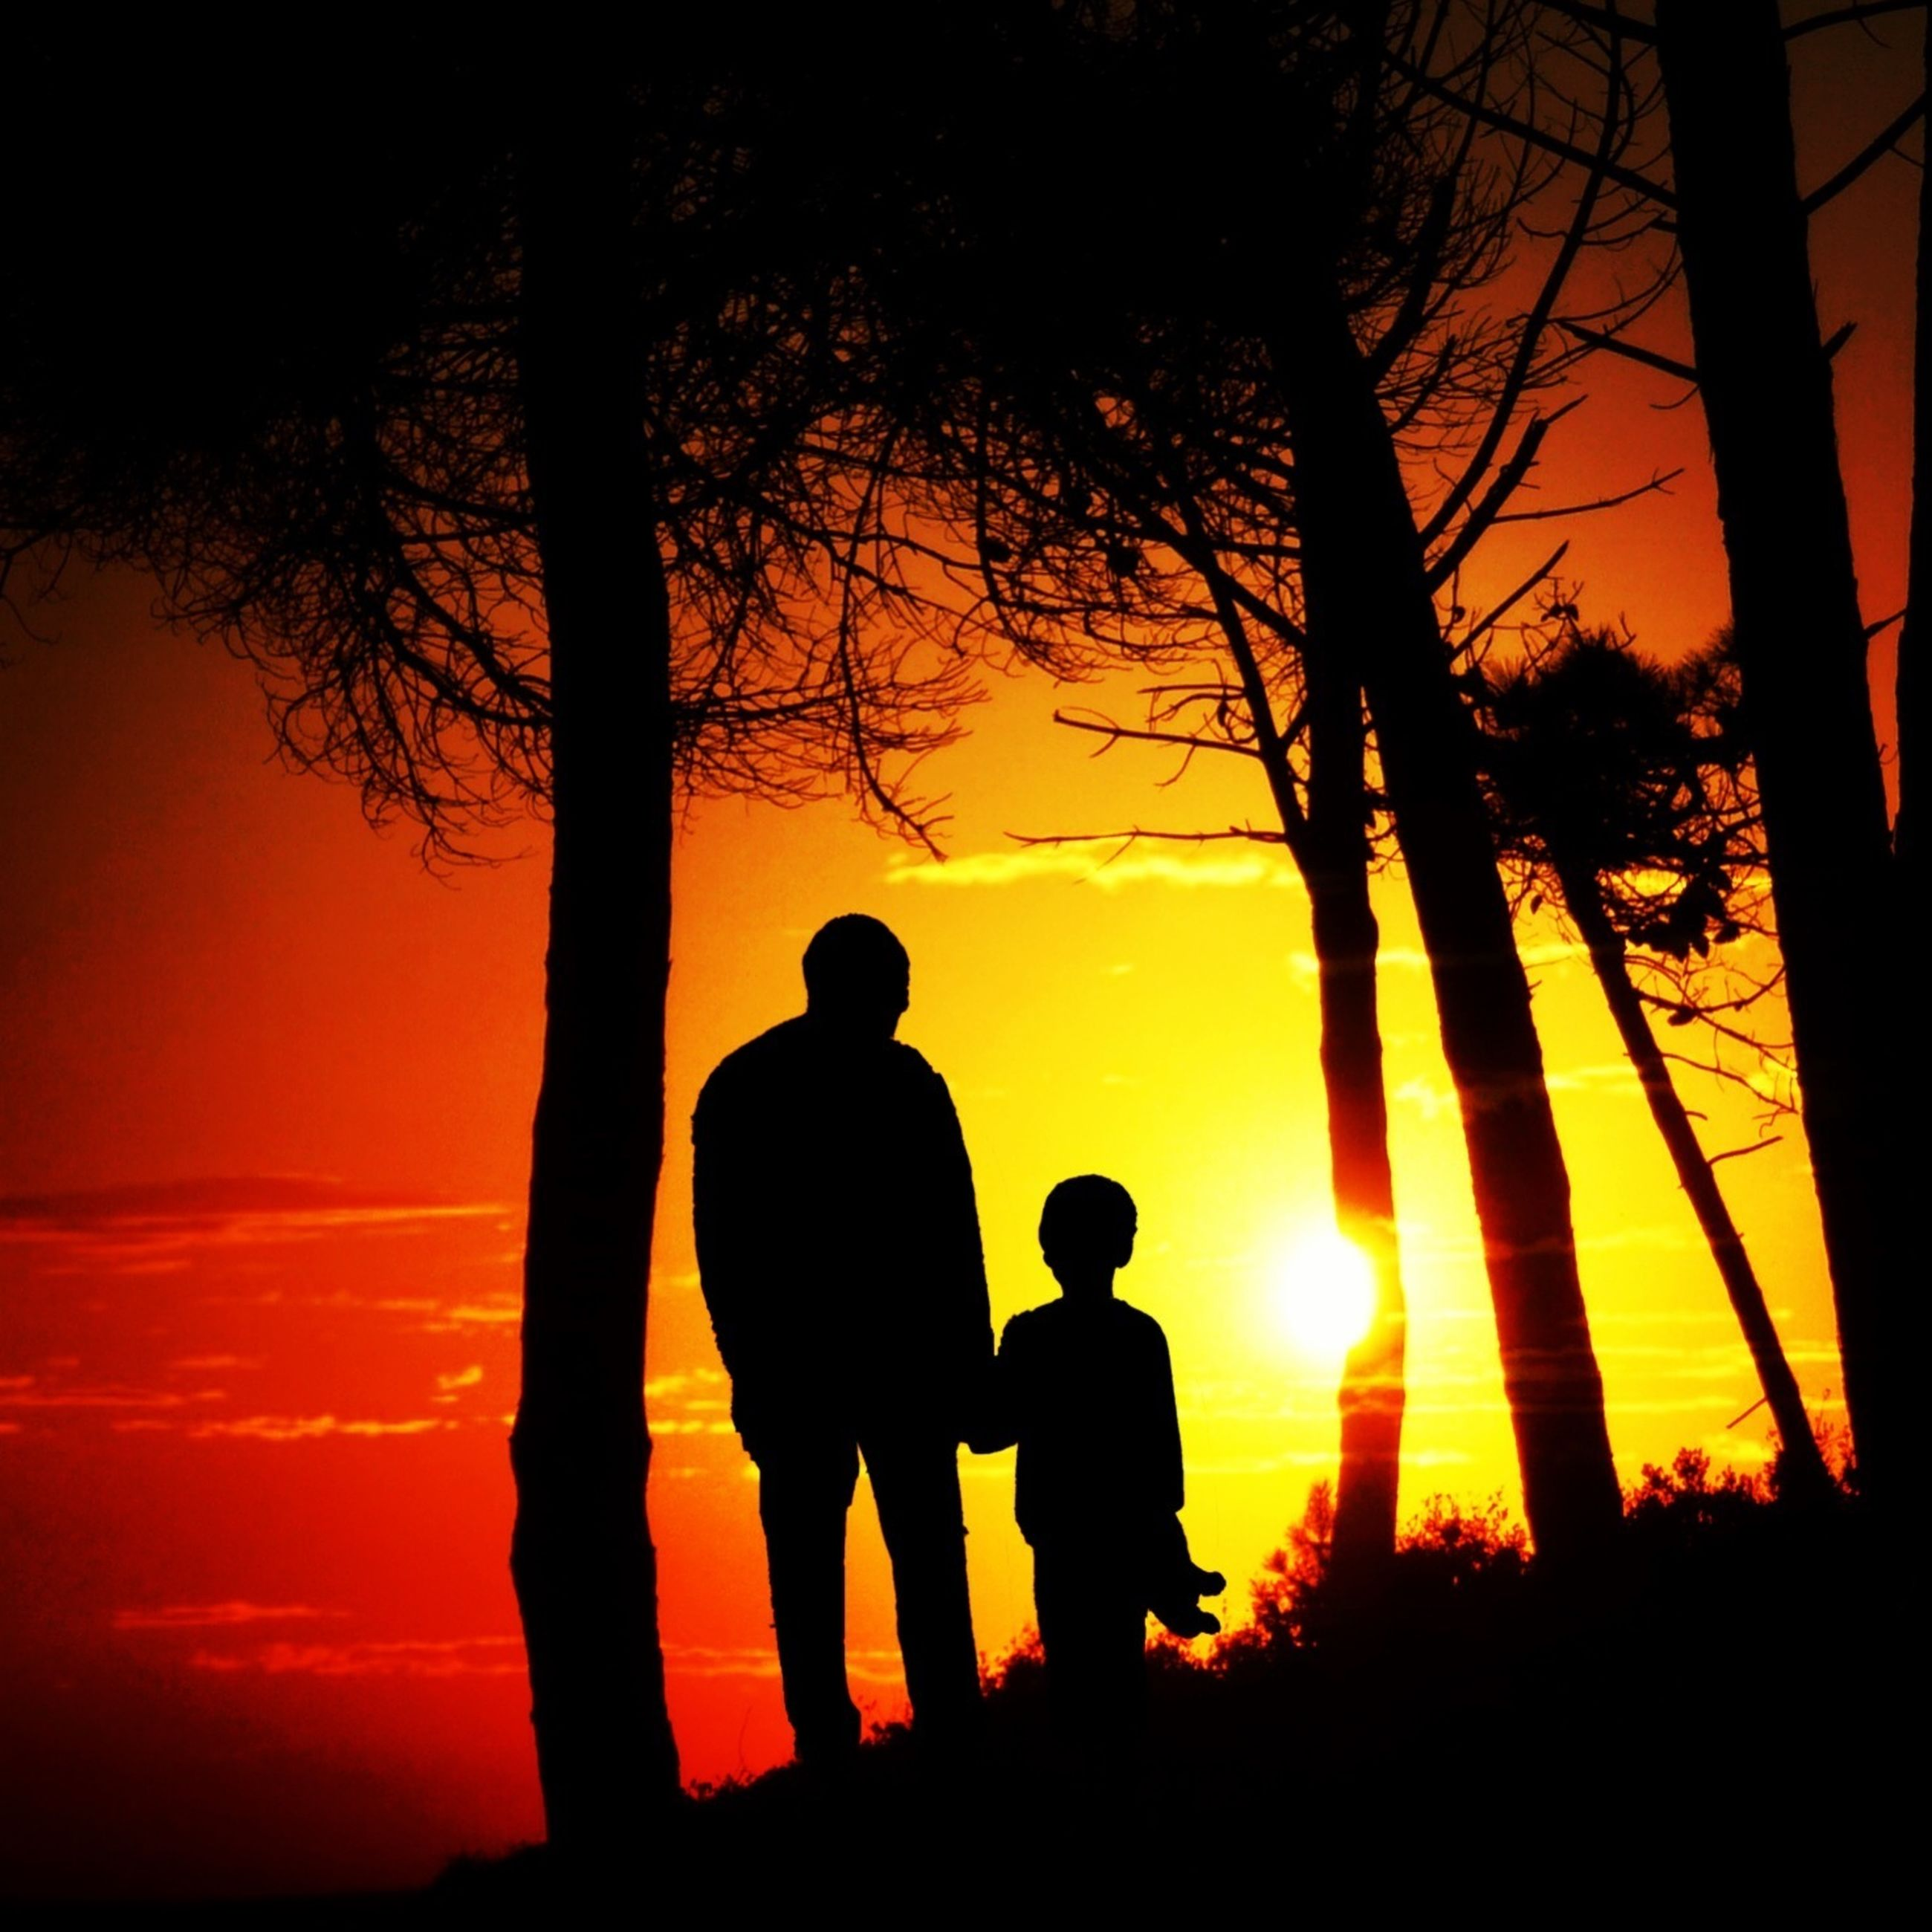 sunset, silhouette, sun, togetherness, orange color, bonding, lifestyles, leisure activity, tree, love, men, beauty in nature, standing, nature, tranquility, tranquil scene, friendship, childhood